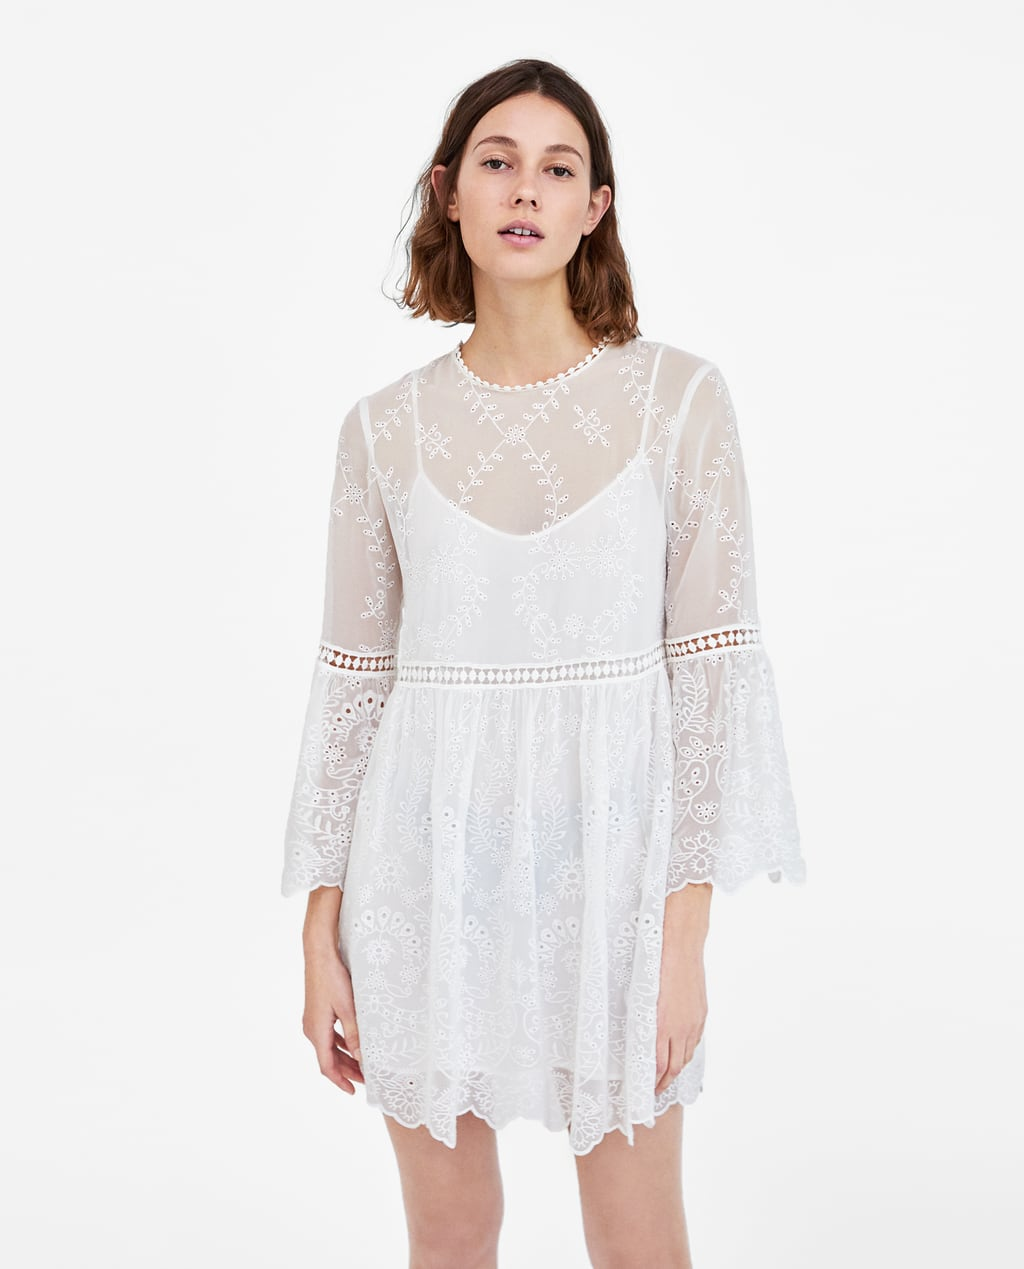 - Semi-sheer dress with a round neckline and long sleeves with ruffles from the elbow down. Features matching hemstitched appliqués, a cinched waist, an A-line silhouette with gathered details, matching lining and a buttoned opening in the back.